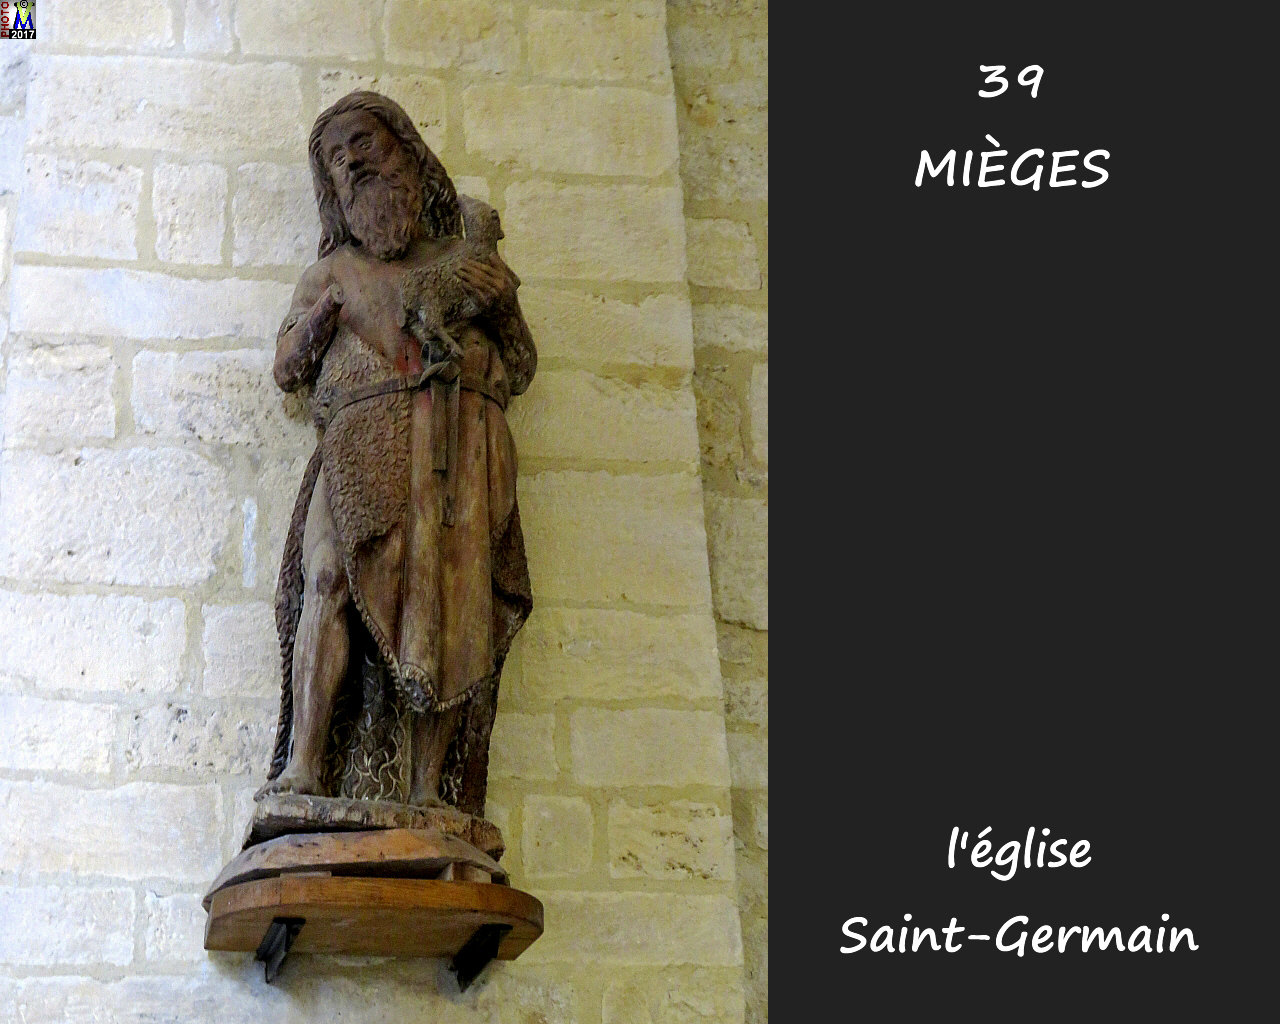 39MIEGES_eglise_274.jpg